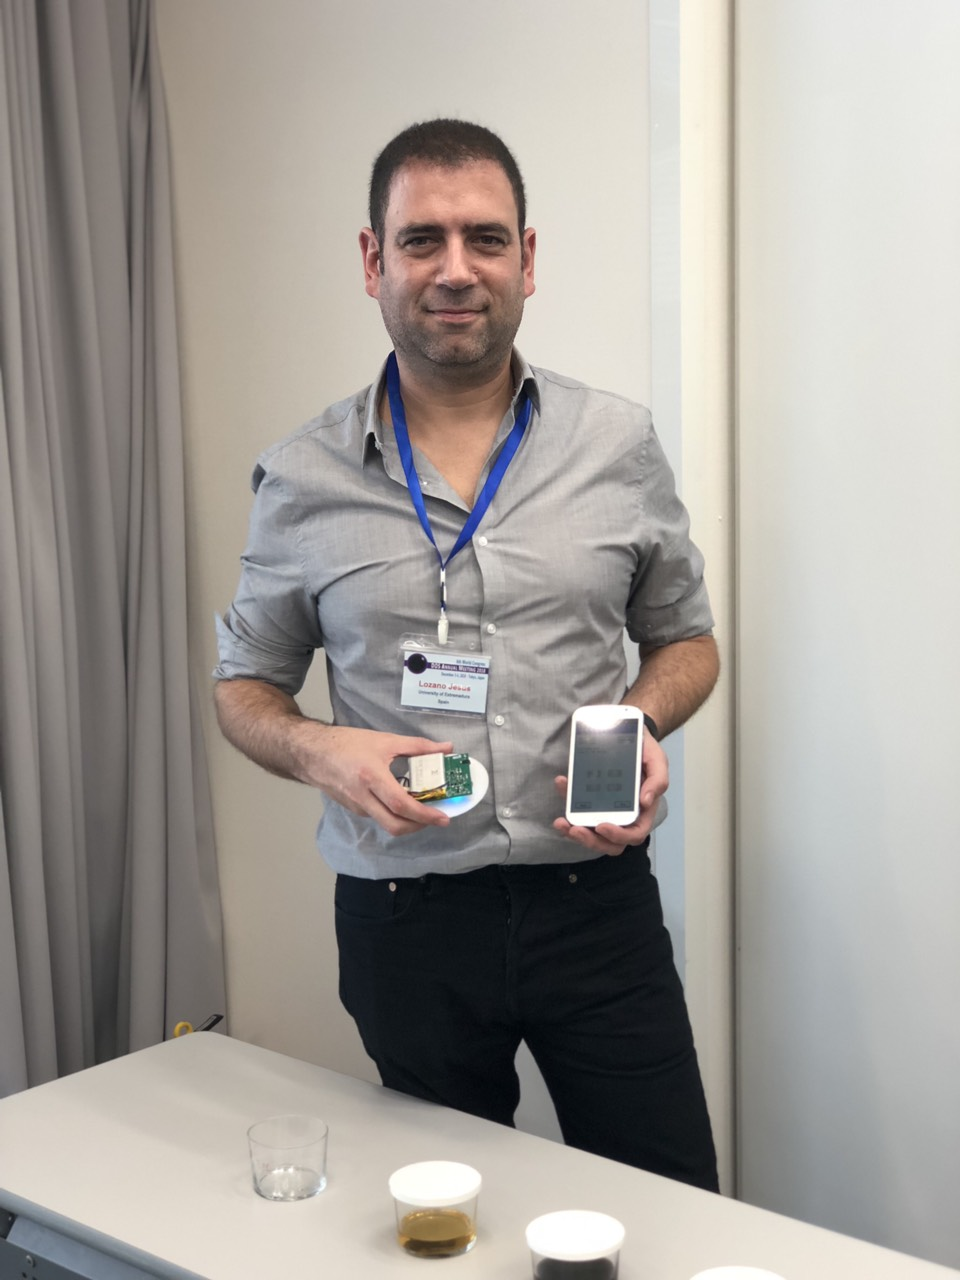 Digital Olfaction 2018 Meeting Scientific Award - Jesus Lozano Rogado